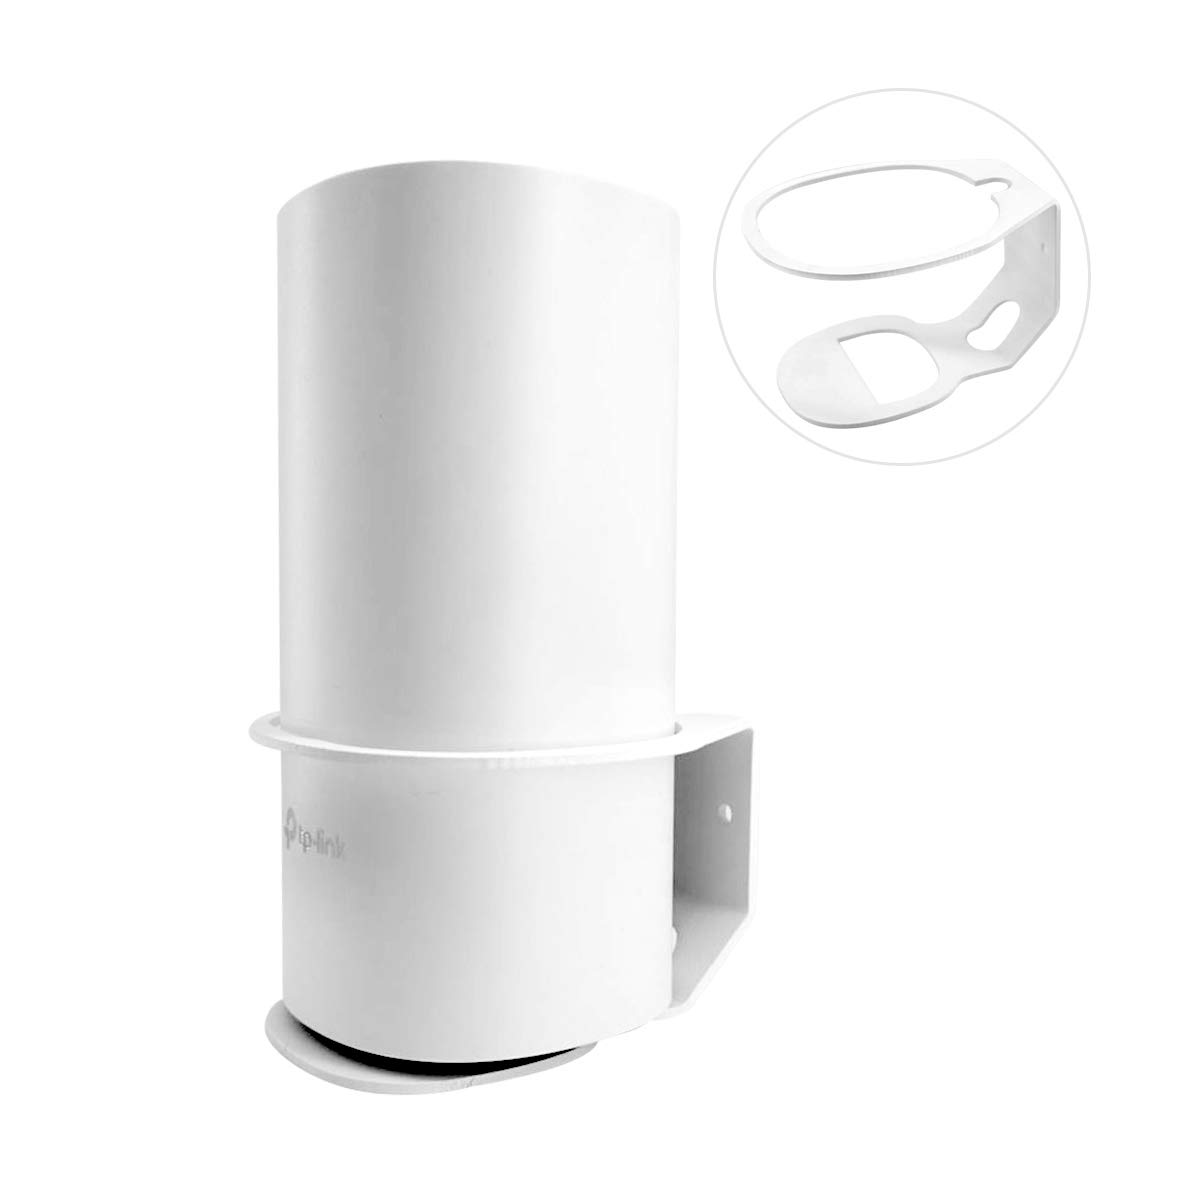 Clear Sturdy Clear Acrylic Wall Shelf Holder HomeMount Compatible with HomePod Mini Wall Mount Space Saving Solution Bracket